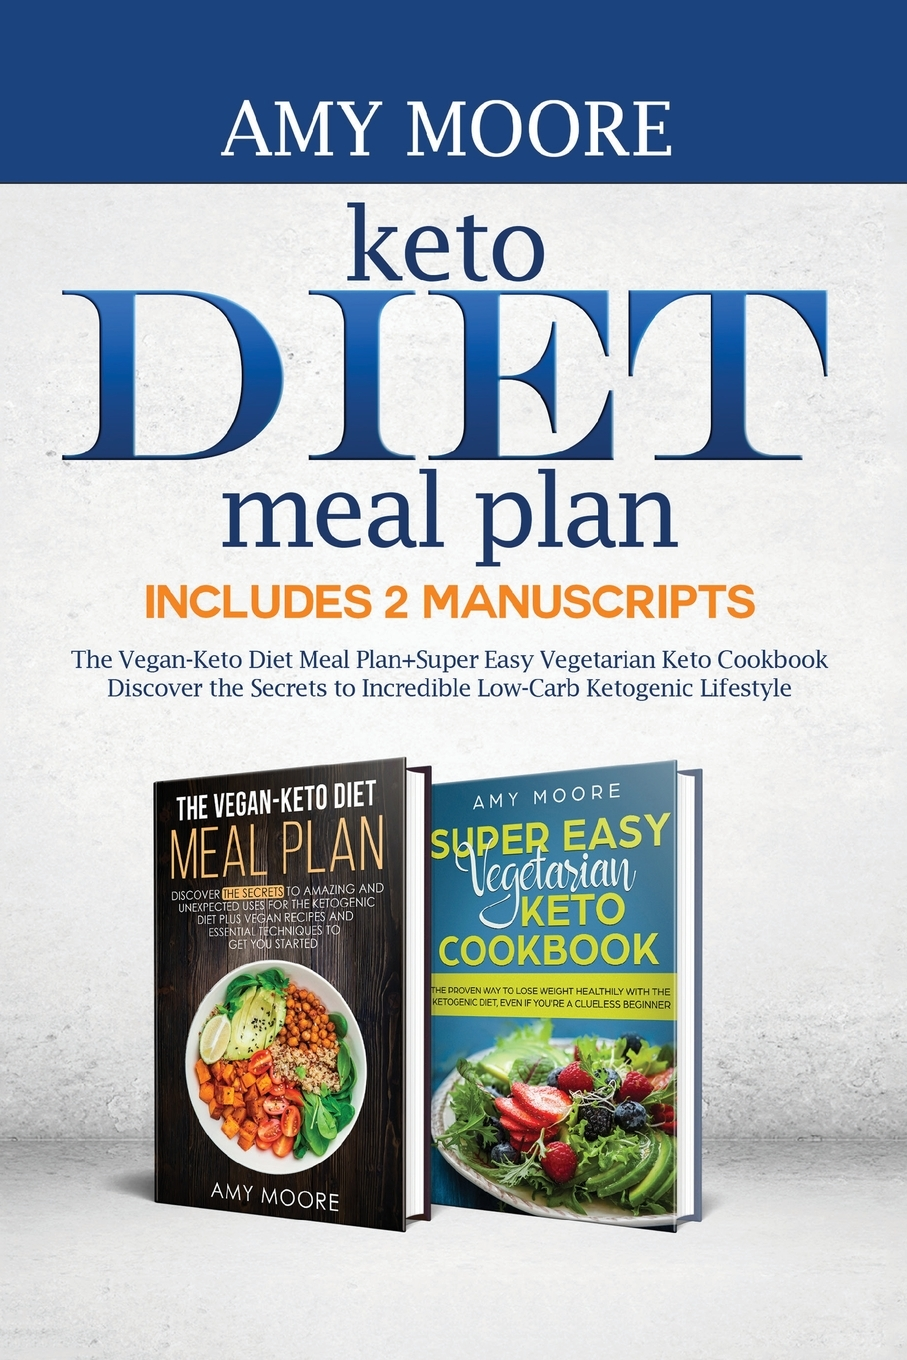 Keto Diet Meal Plan Includes 2 Manuscripts The Vegan Keto Diet Meal Plan Super Easy Vegetarian Keto Cookbook Discover The Secrets To Incredible Low Carb Ketogenic Lifestyle Paperback Walmart Com Walmart Com